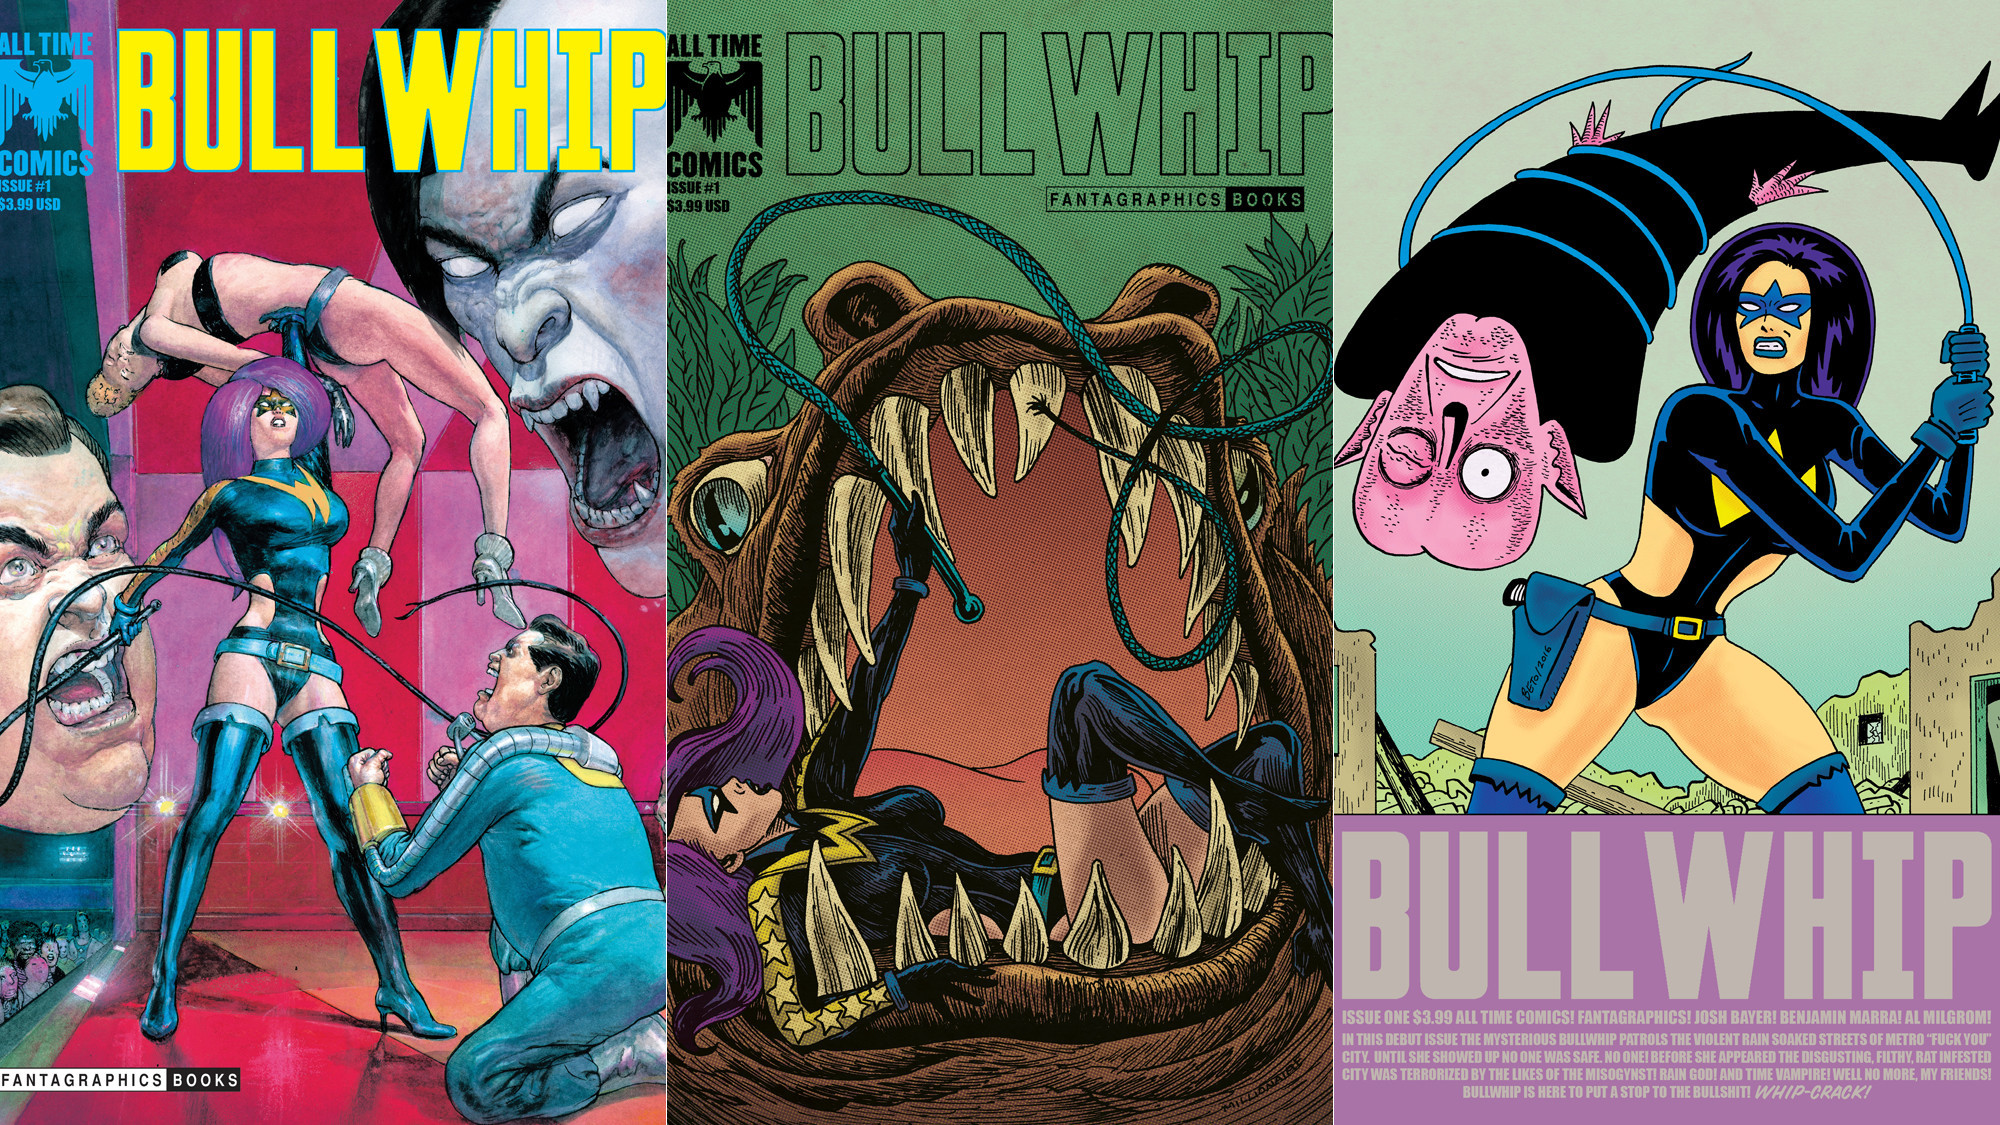 """All Time Comics: Bullwhip No. 1"" covers by Das Pastoras, from left, Tony Millionaire and Gilbert Hernandez"